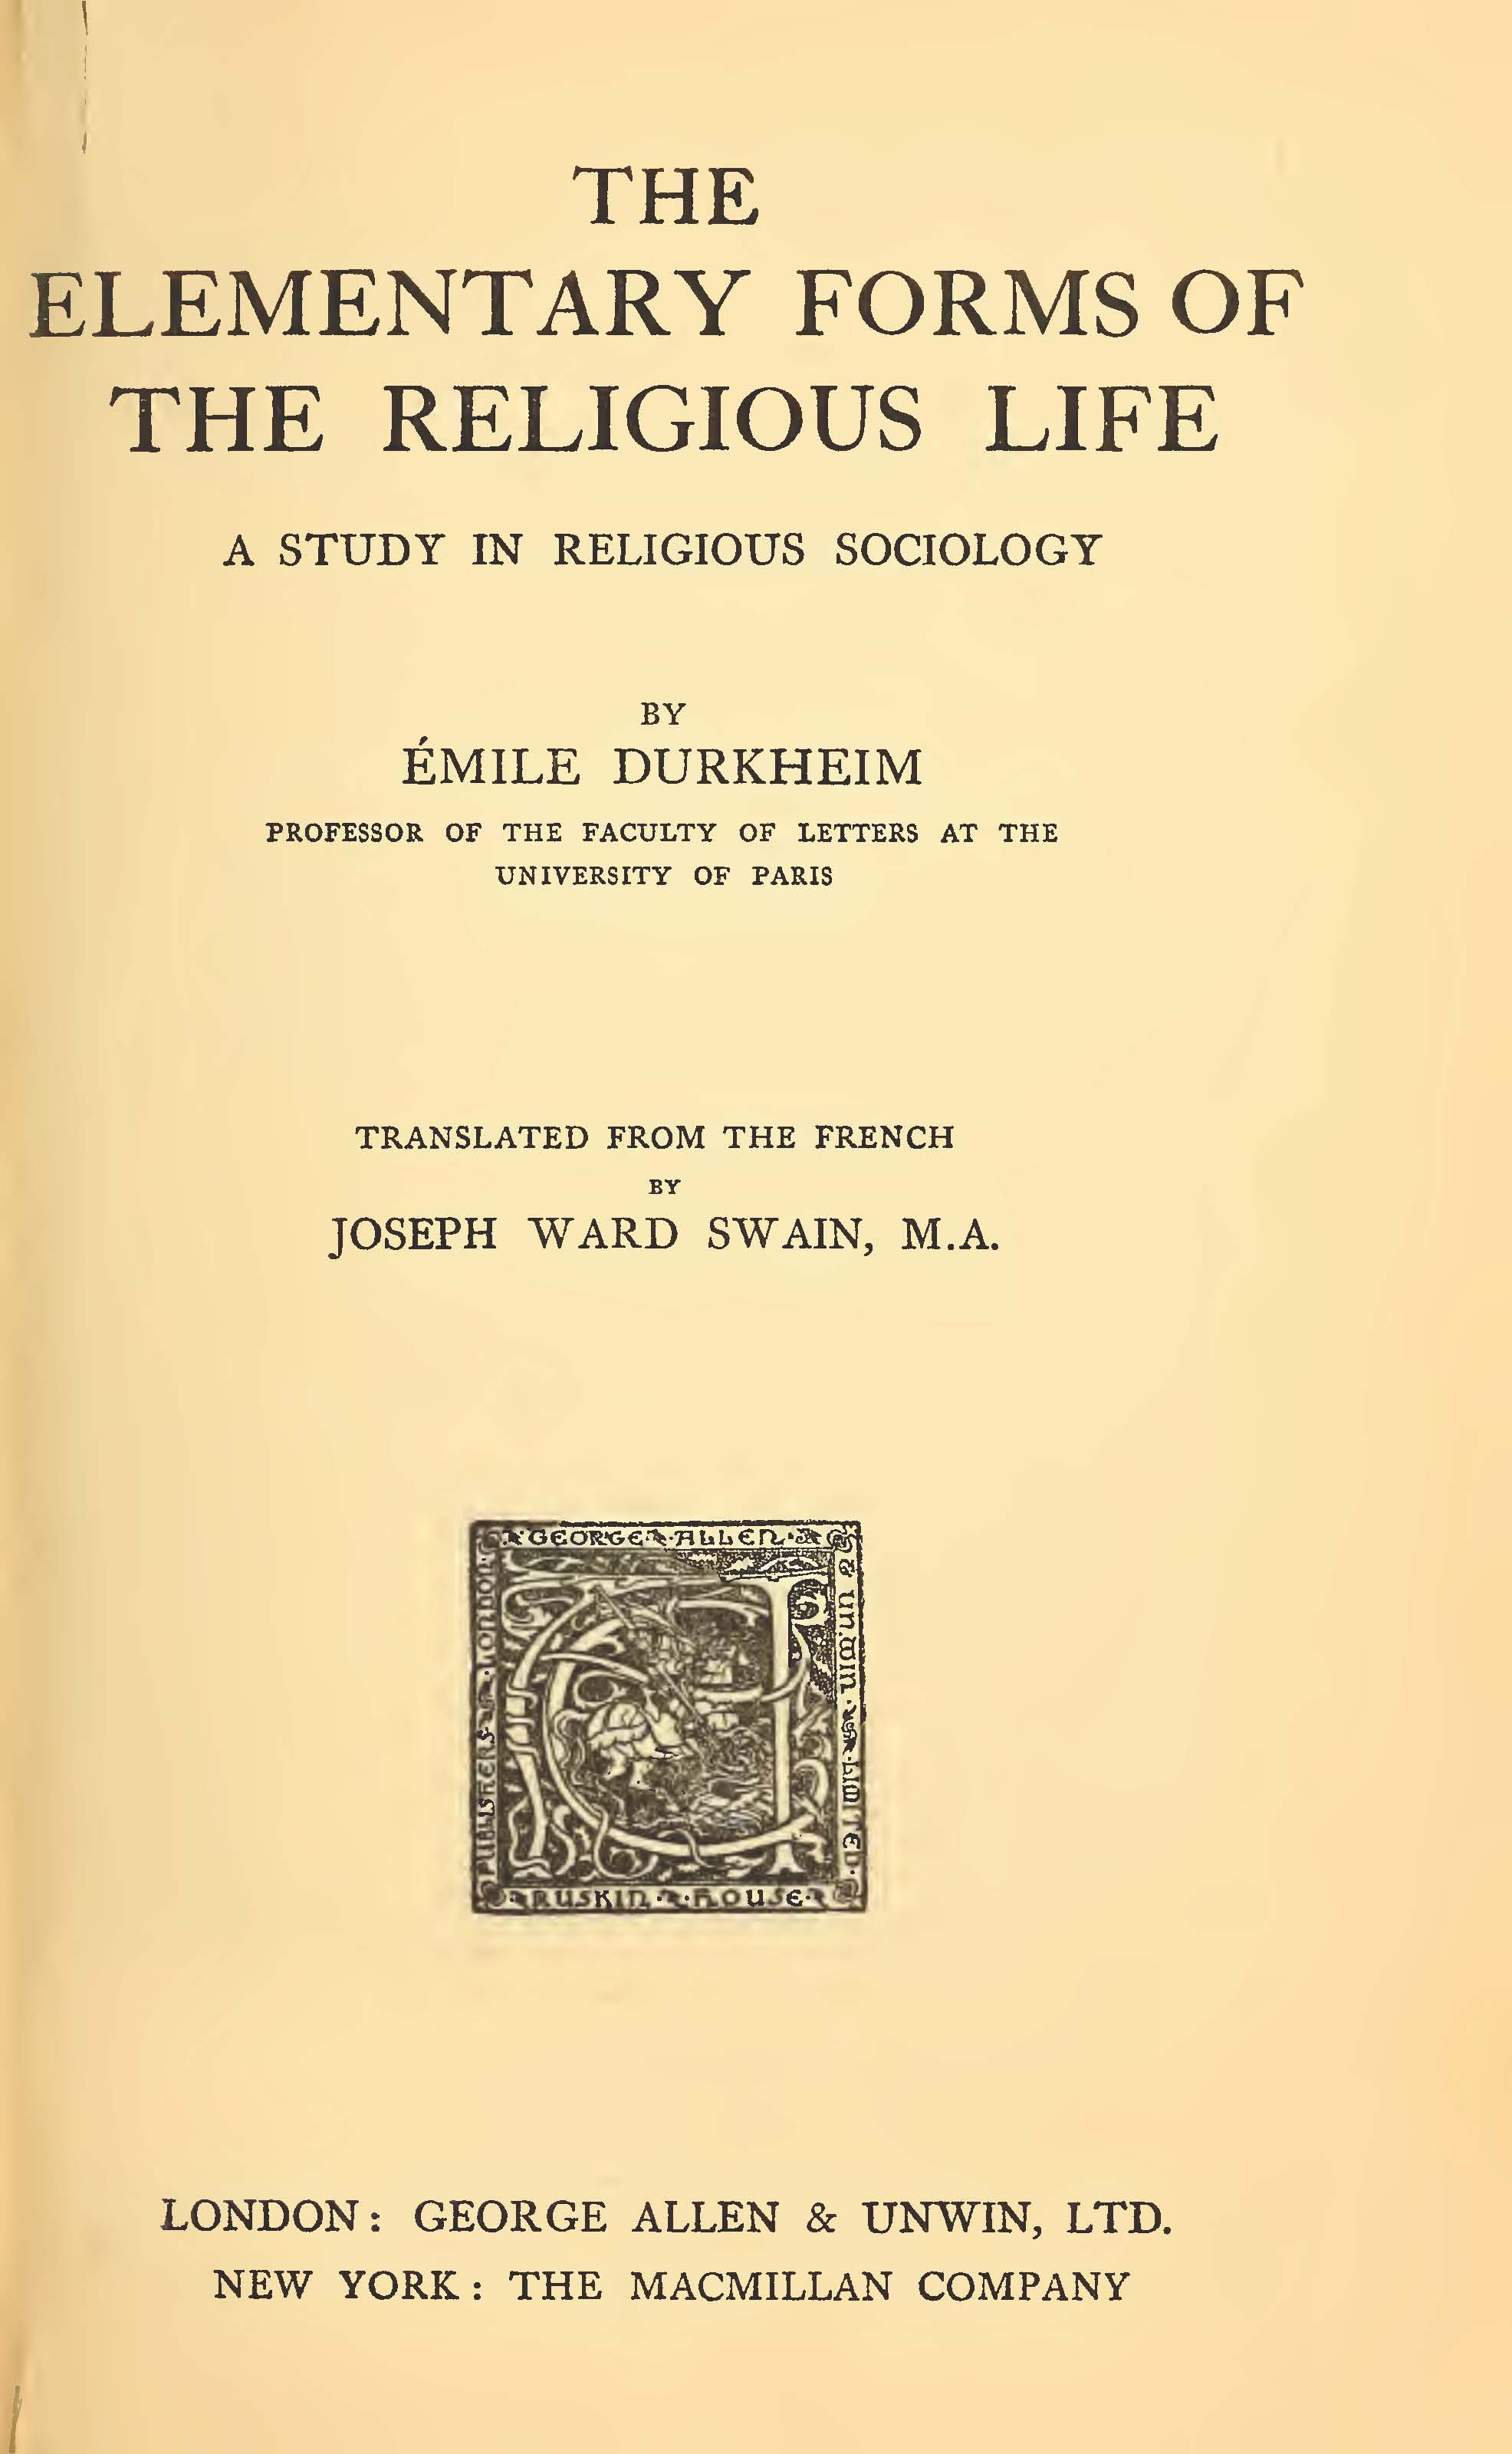 Emile Durkheim: religion – the very idea, part 1: the analysis of moral life